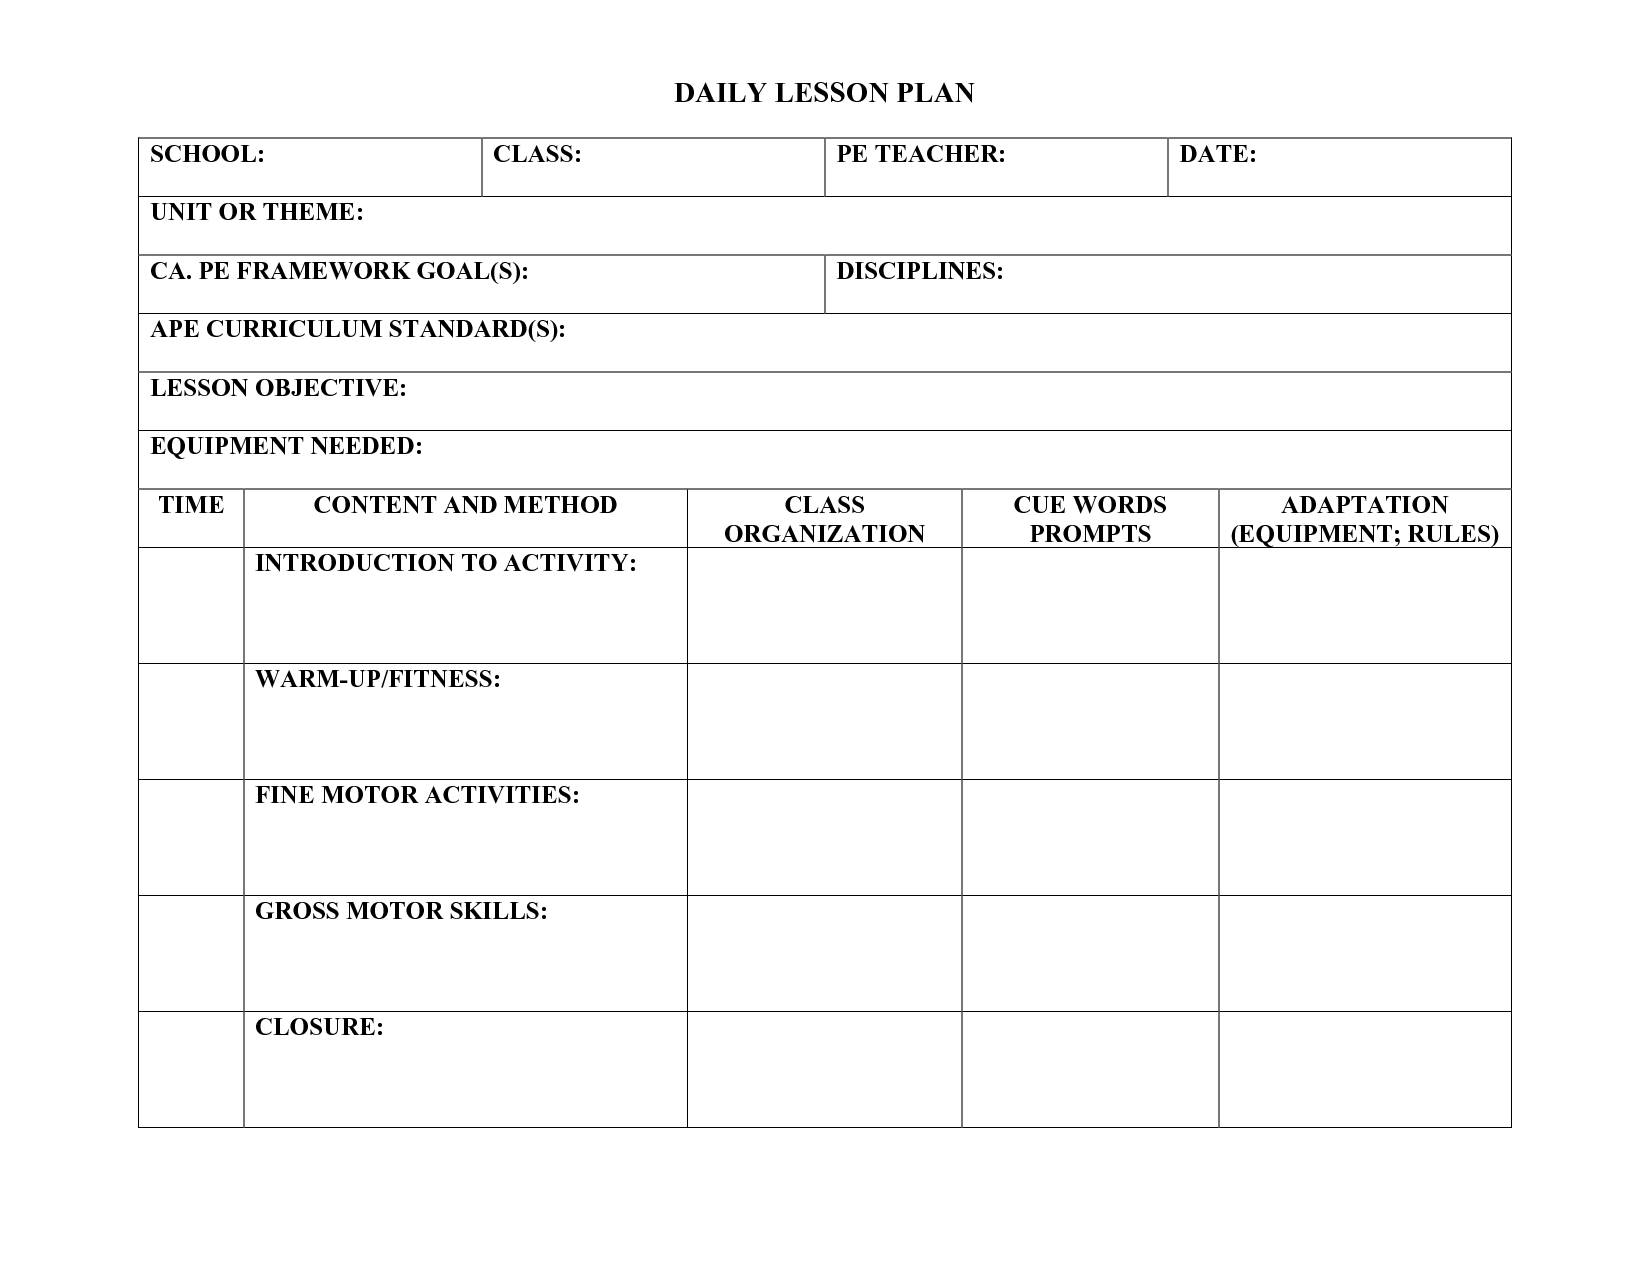 Lesson Plan Template For Pe Teachers